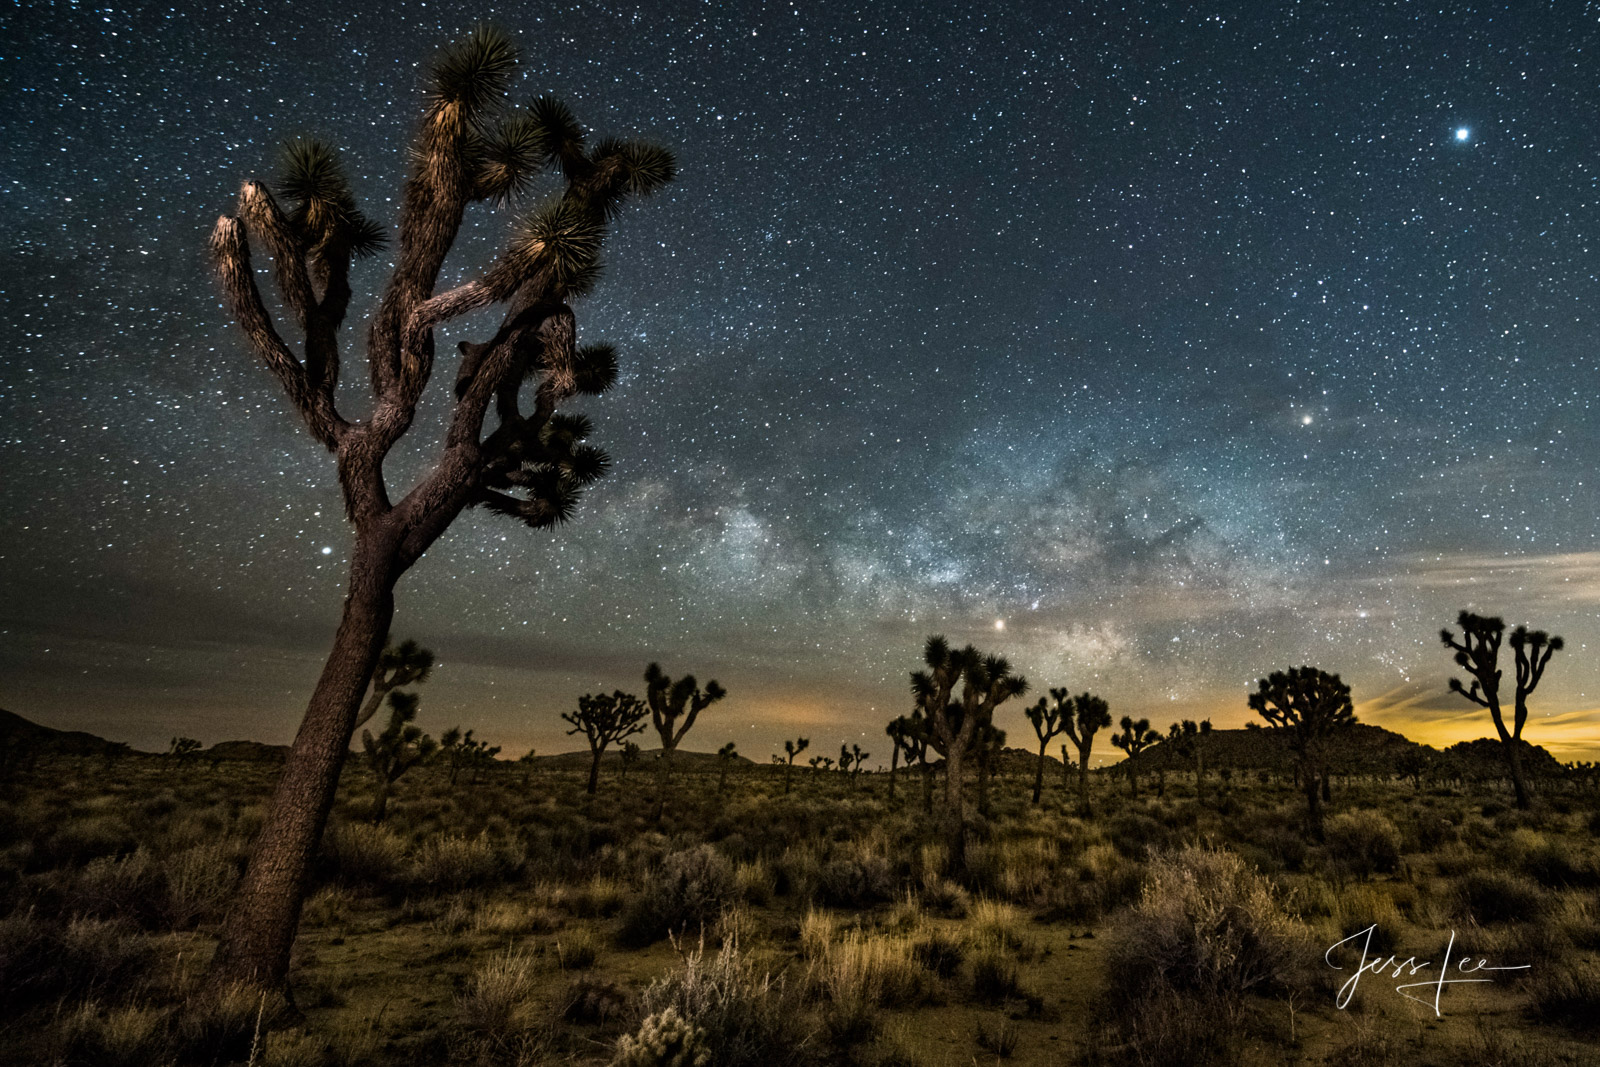 Limited Edition of 50 Exclusive high-resolution Museum Quality Fine Art Prints of the Night Sky photographed in Joshua Tree....